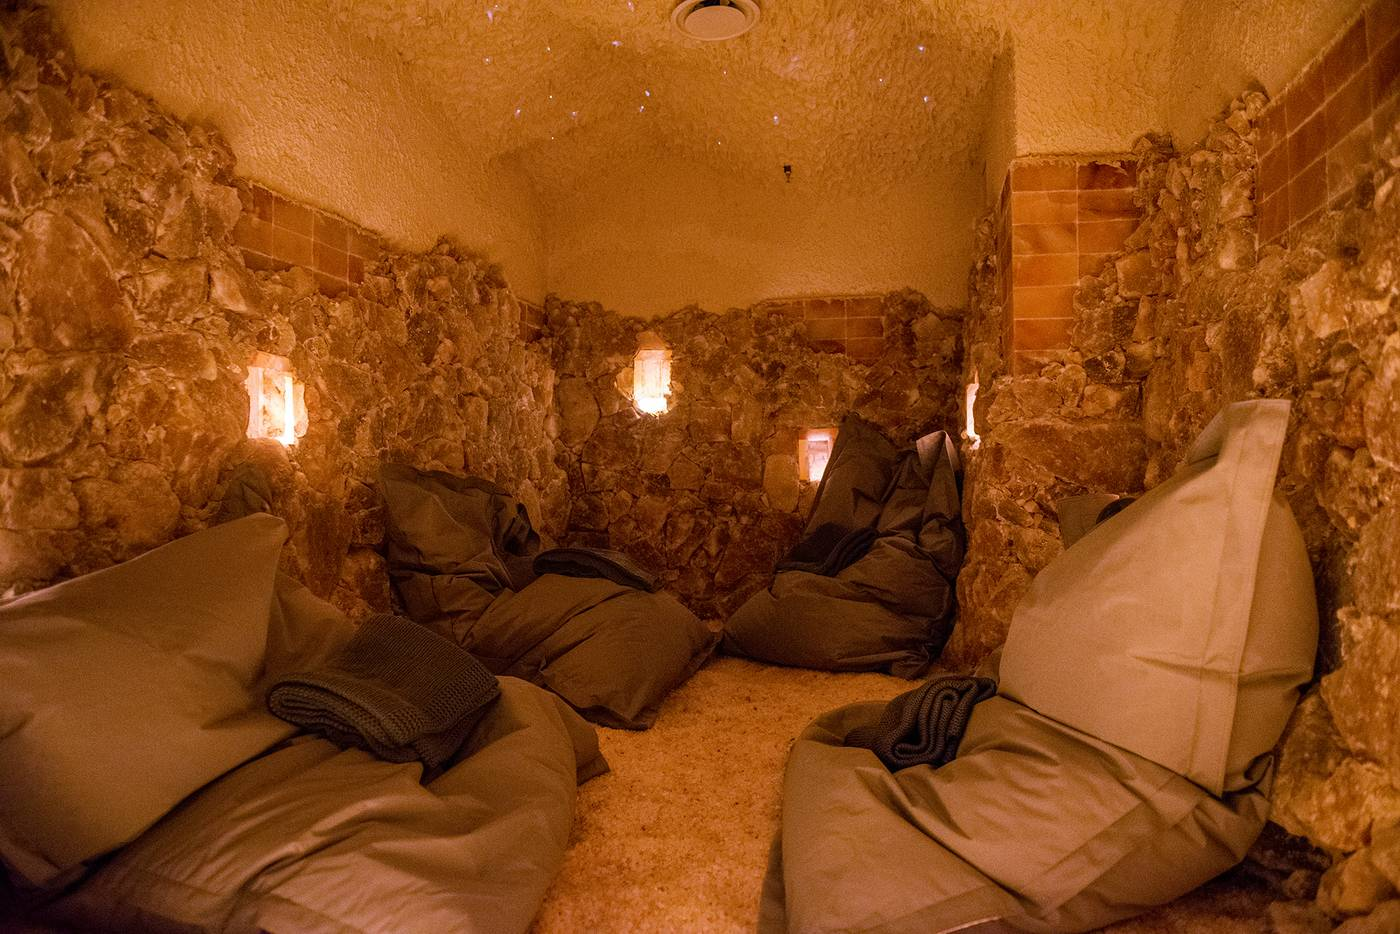 Hoame Toronto Edit Seven meditation salt cave